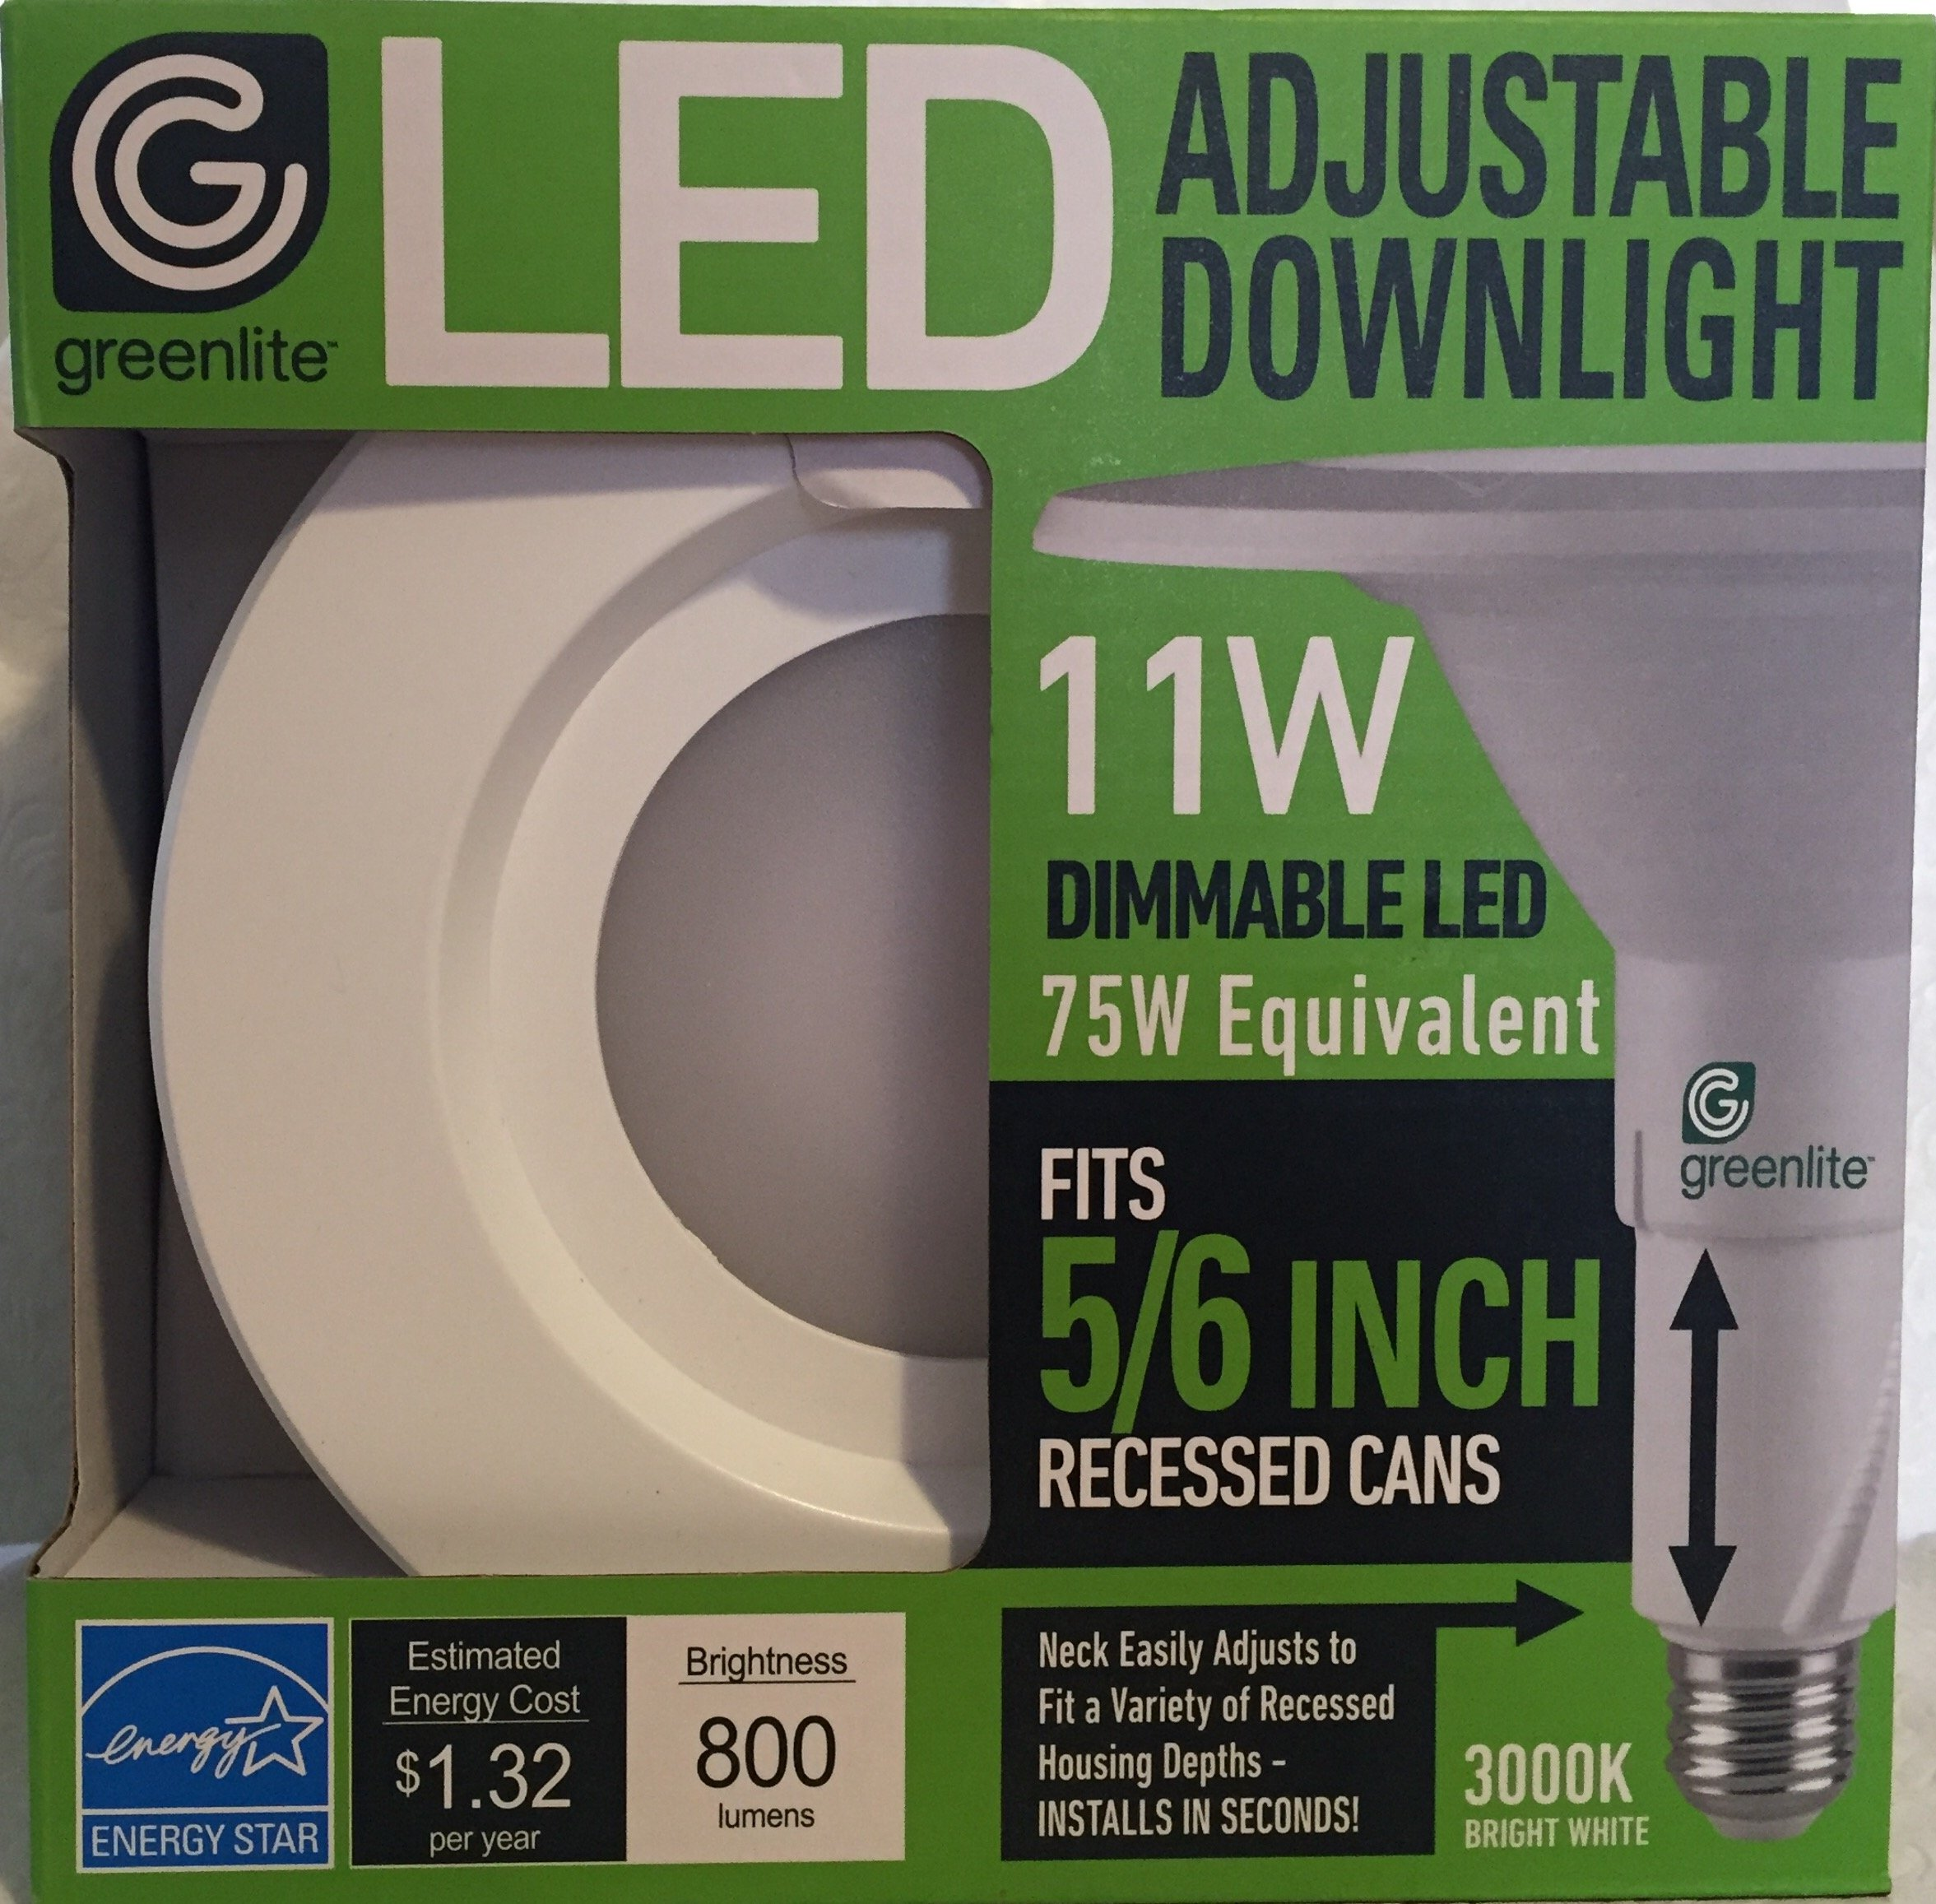 Greenlite 5/6 Inch Recessed Trim 11w Dimmable Led 75w Equivalent 3000K